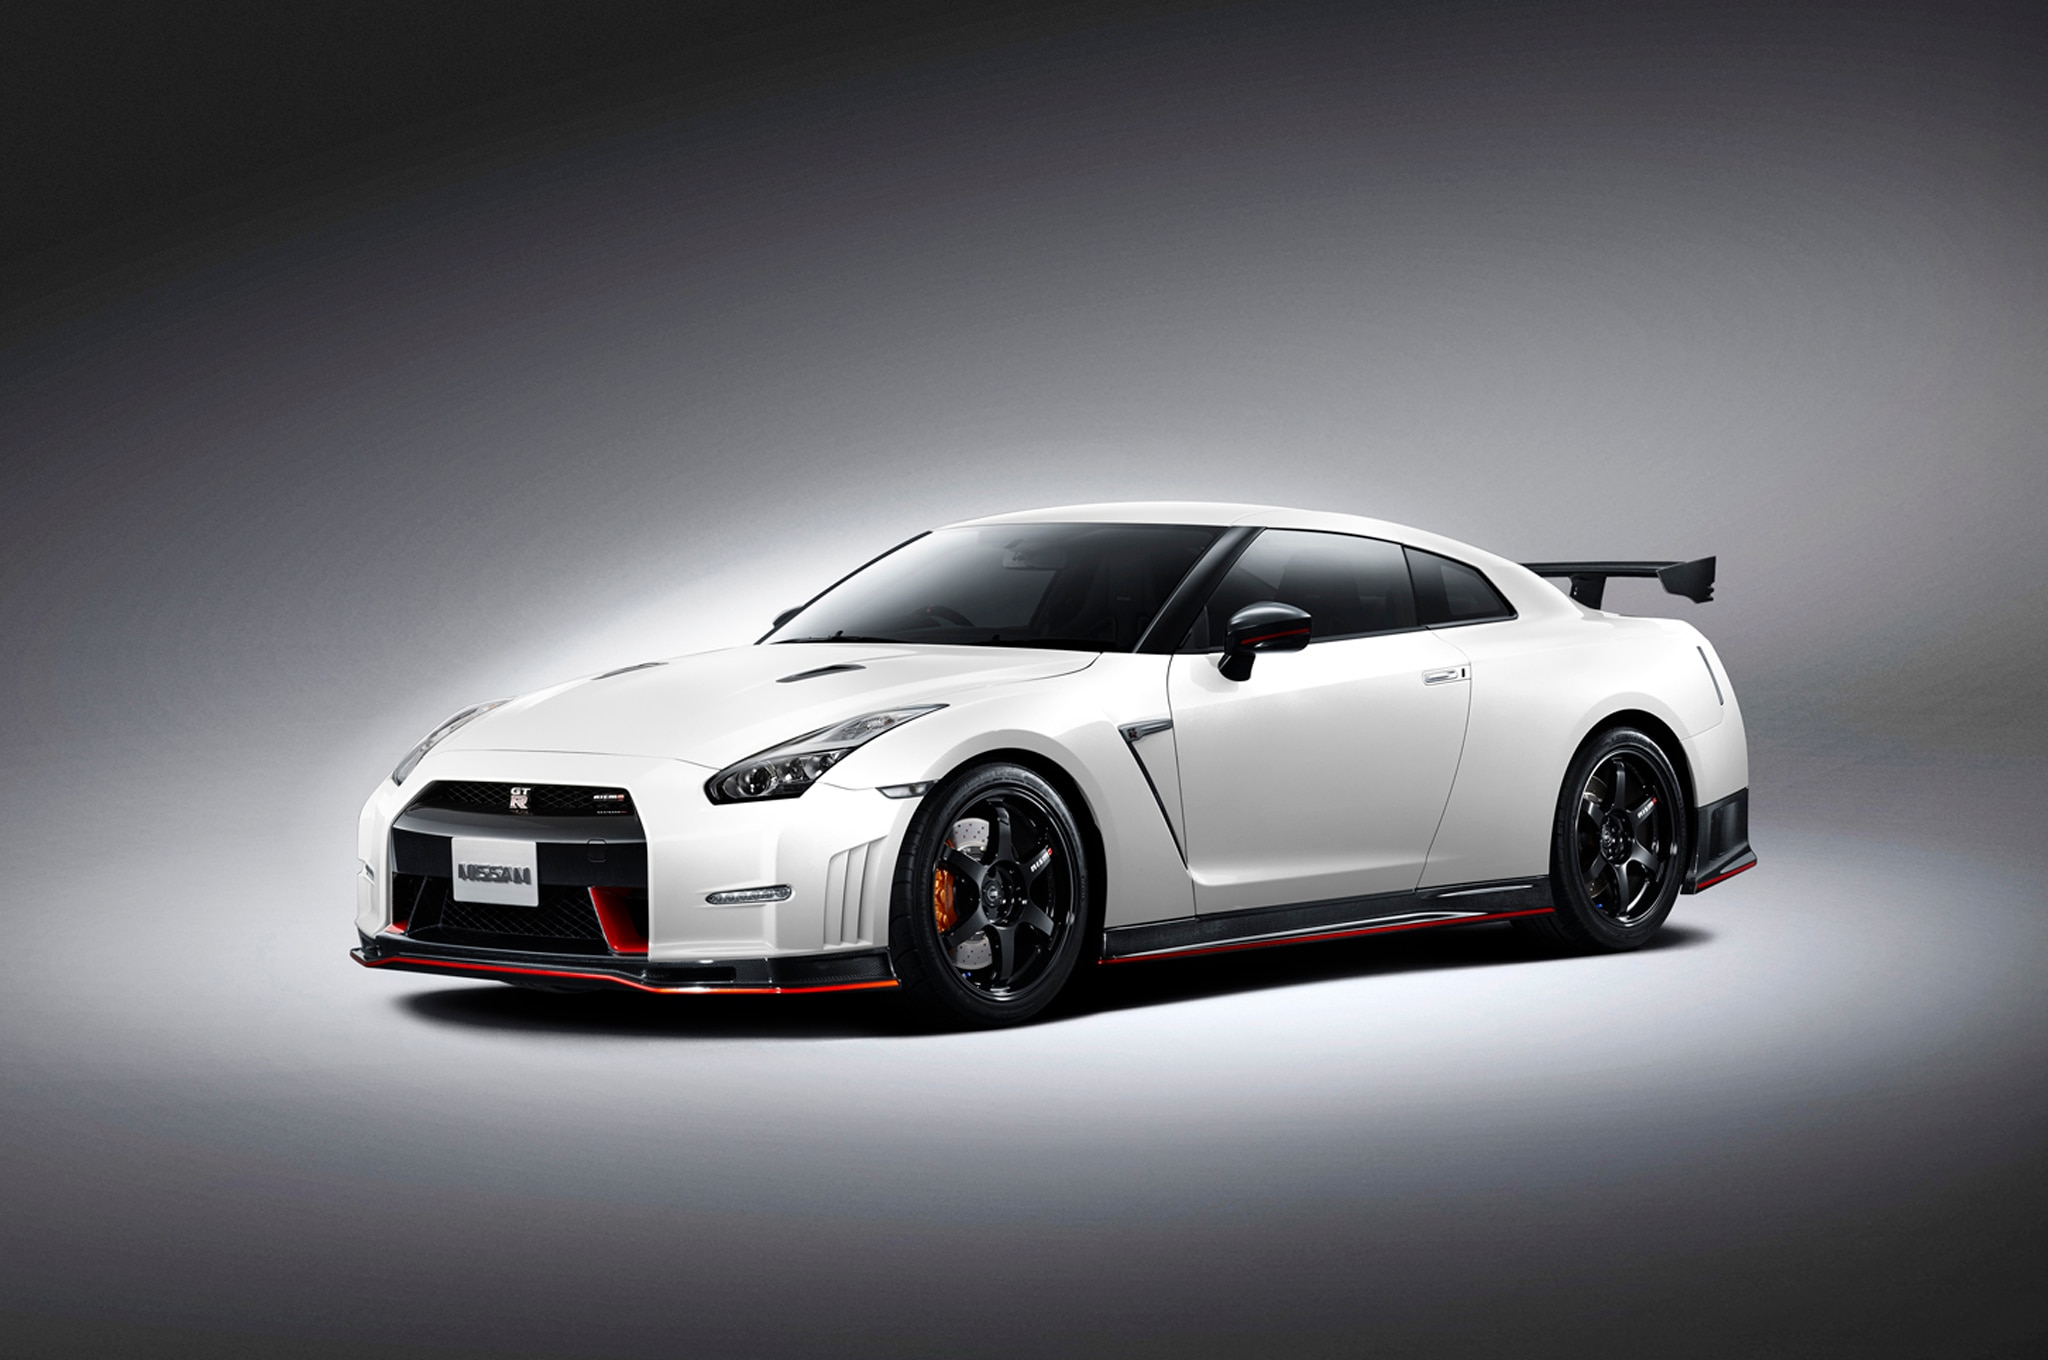 2015 nissan gt r nismo priced at 151 585 automobile magazine. Black Bedroom Furniture Sets. Home Design Ideas